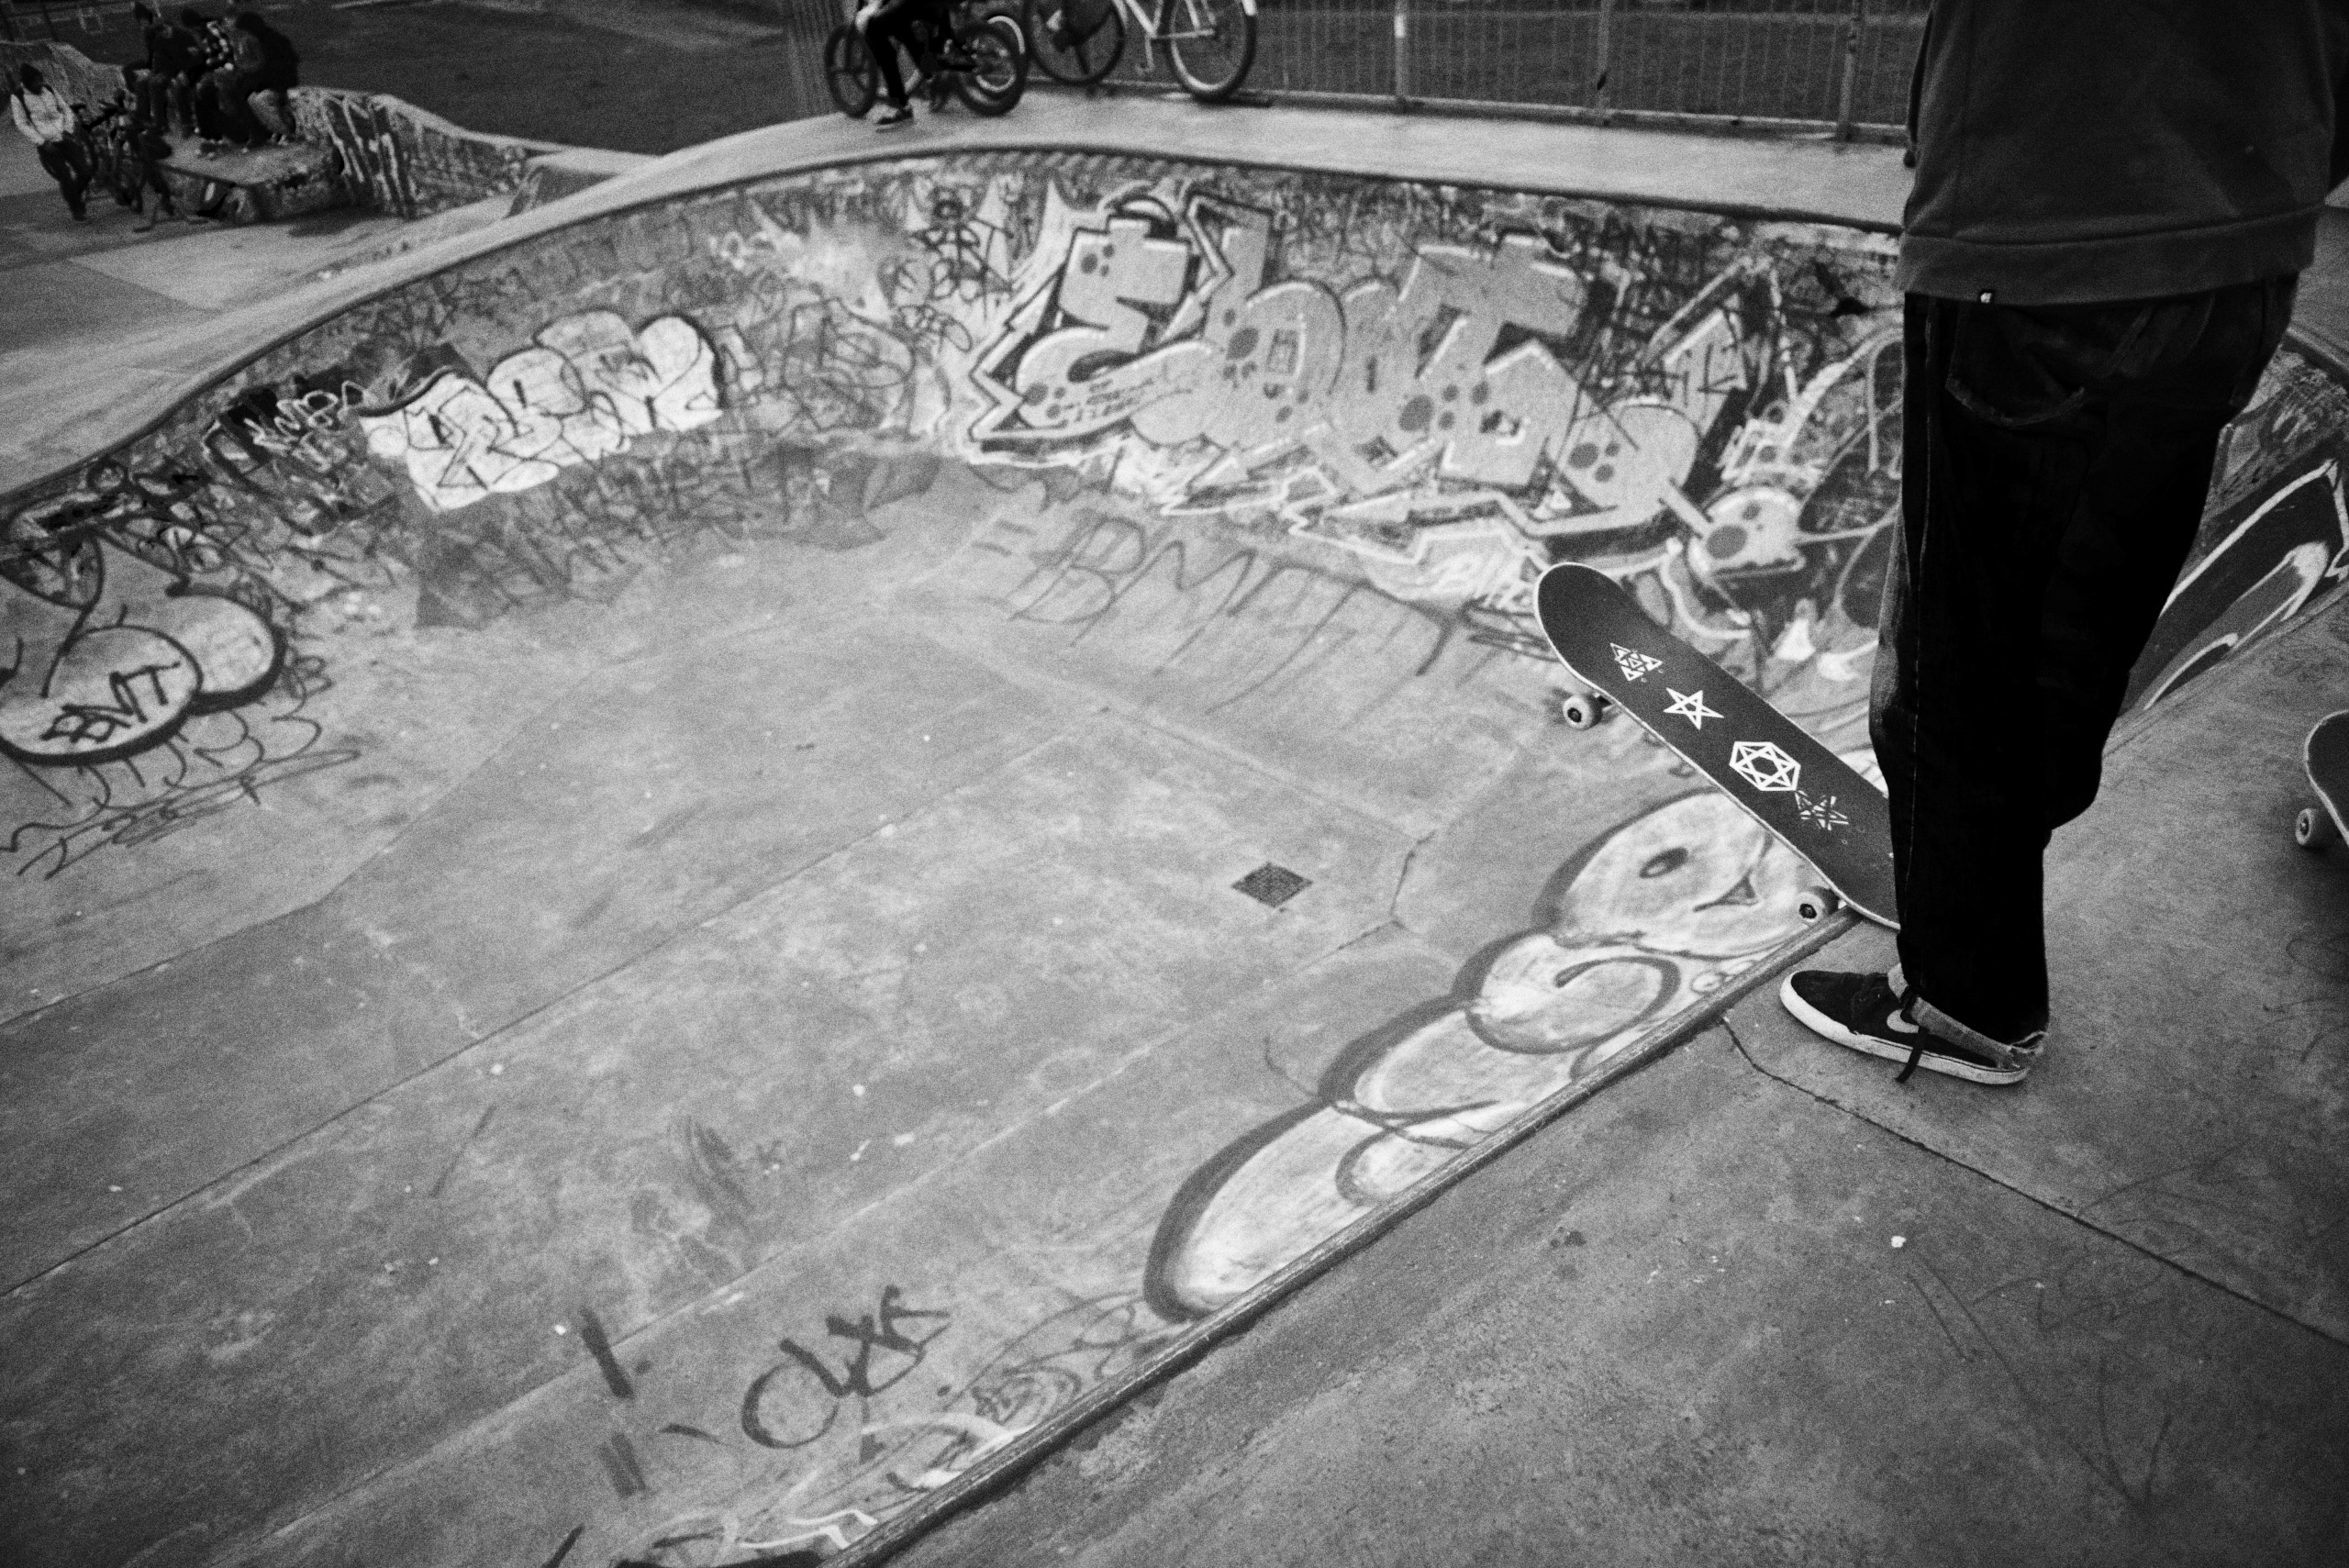 Brixton-skate-park-Matt-Stansfield-Lifestyle-Youth-Culture_1